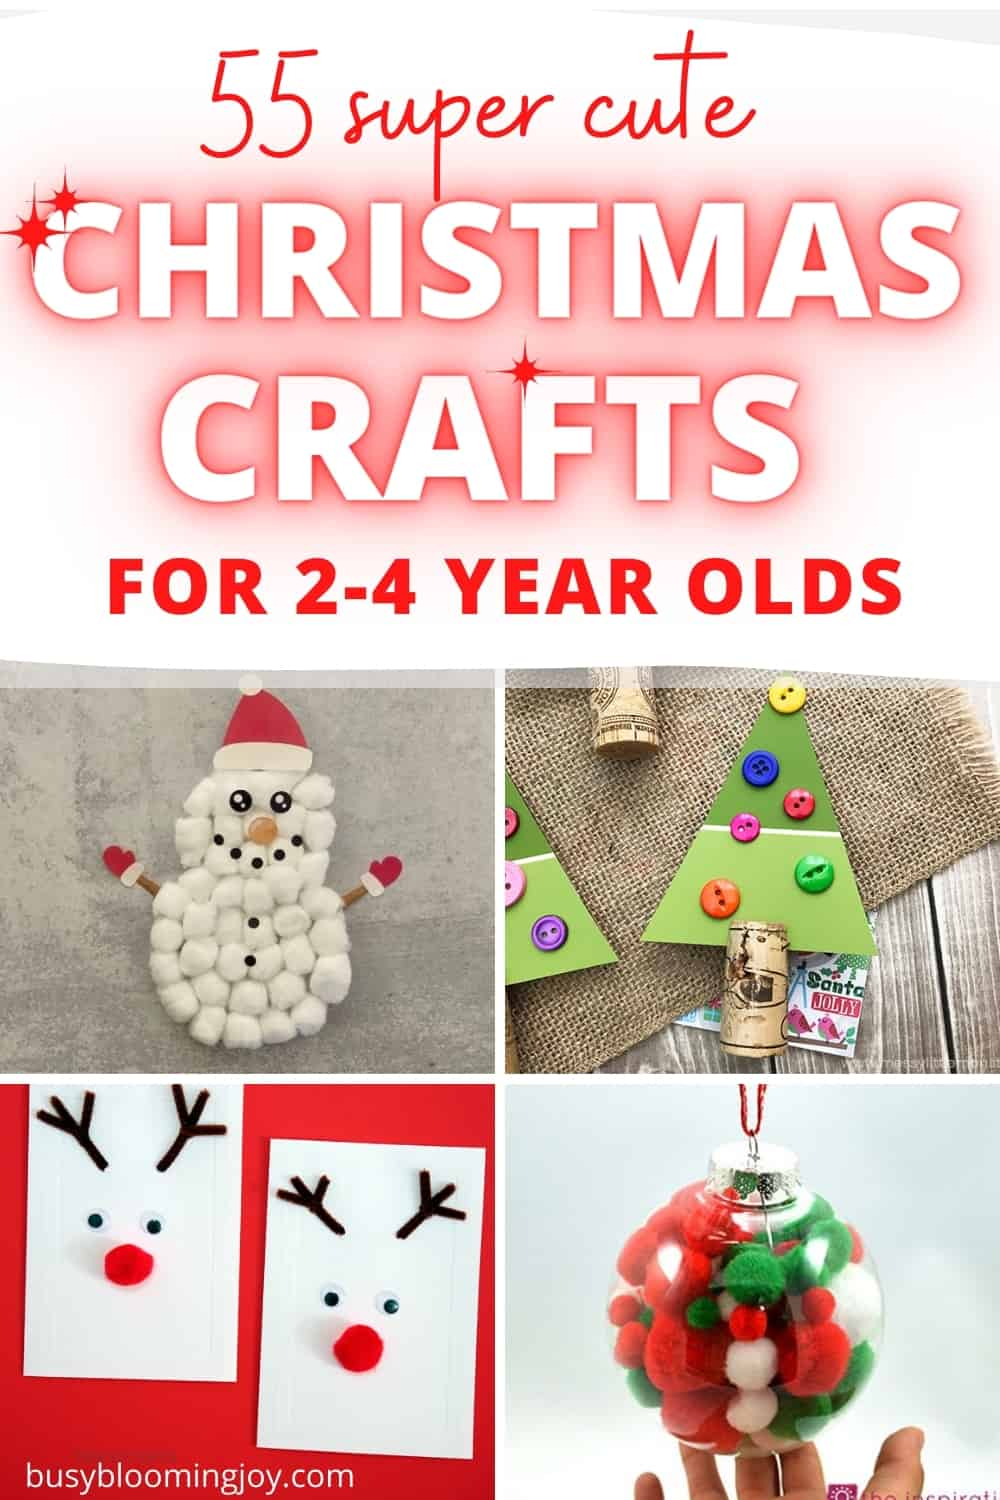 55 cute Christmas crafts for toddlers & preschoolers (including lots of stress-free, minimal mess ones)